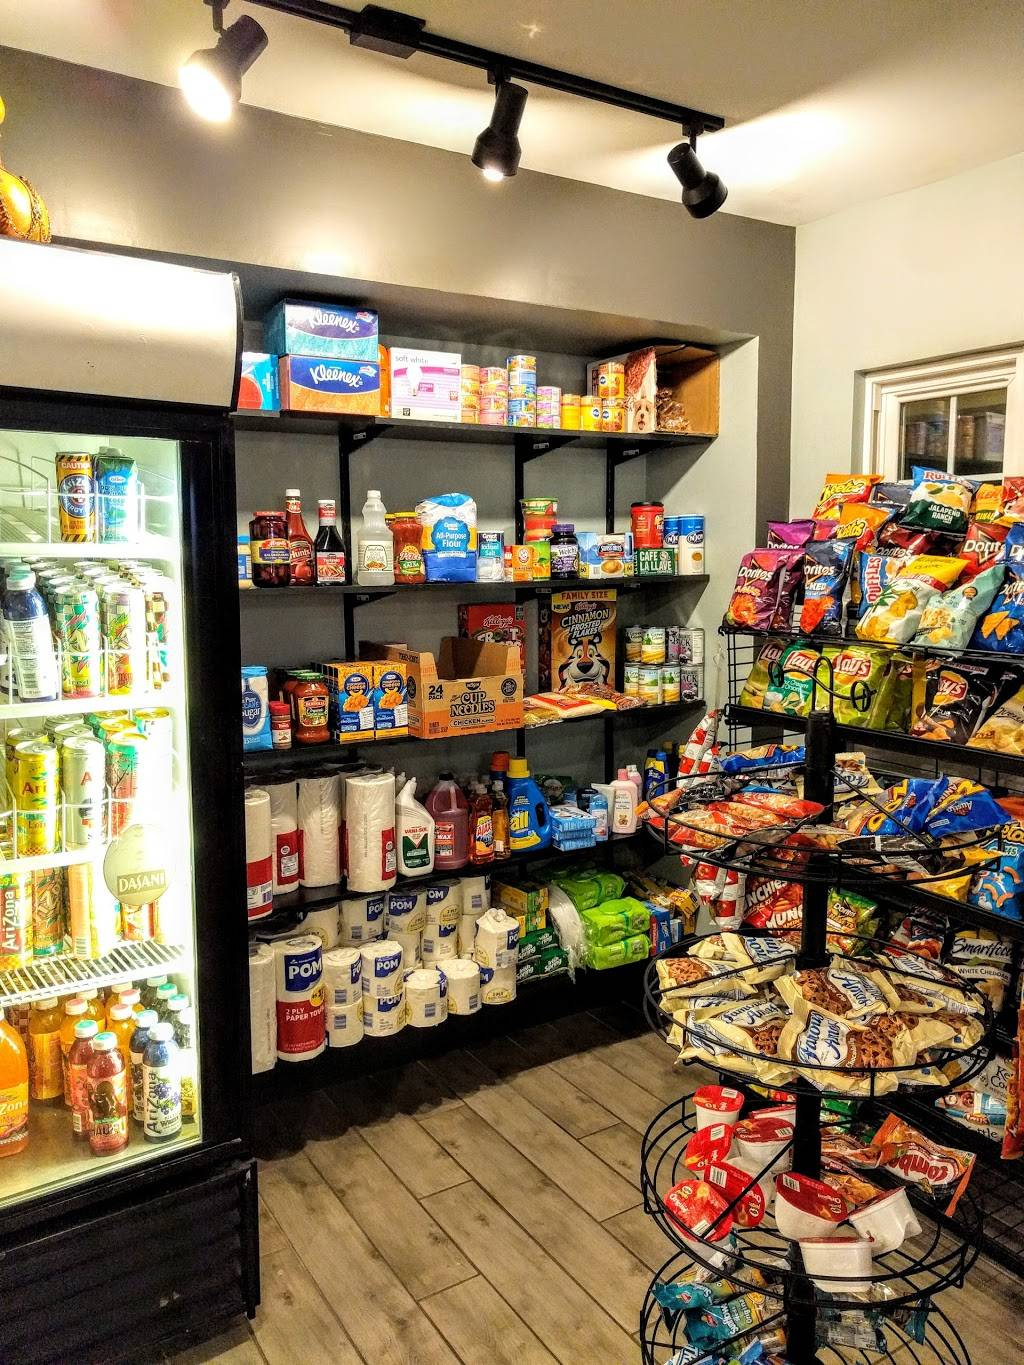 Bayside Market - convenience store  | Photo 2 of 2 | Address: 6301 S West Shore Blvd, Tampa, FL 33616, USA | Phone: (813) 559-7319